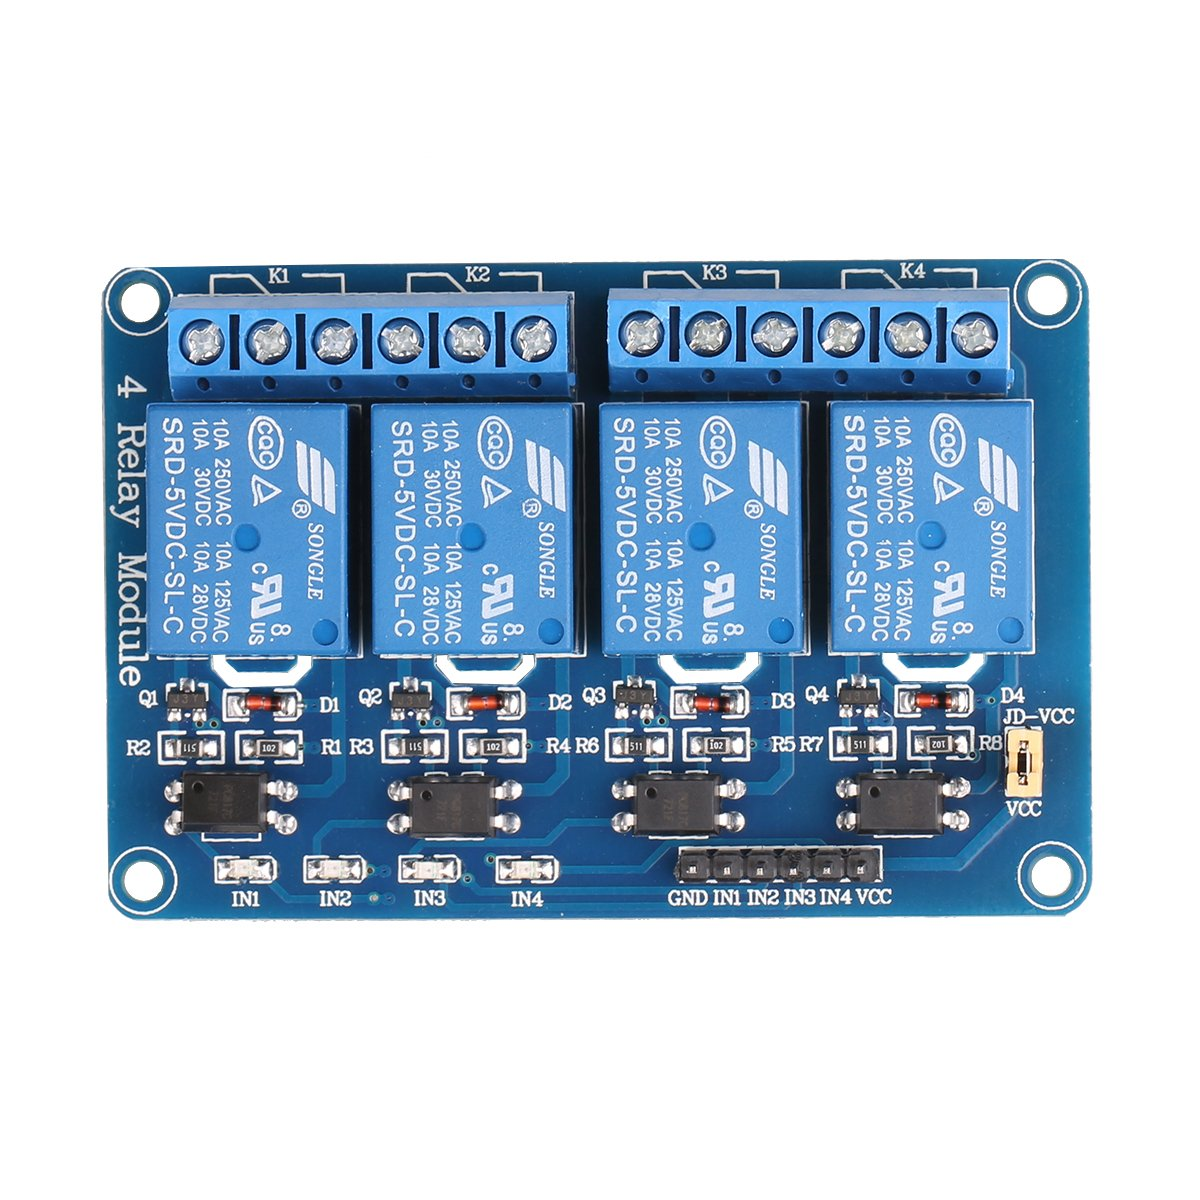 Jbtek 4 Channel Dc 5v Relay Module For Arduino Raspberry Electric Cost Pi Dsp Avr Pic Arm Computers Accessories